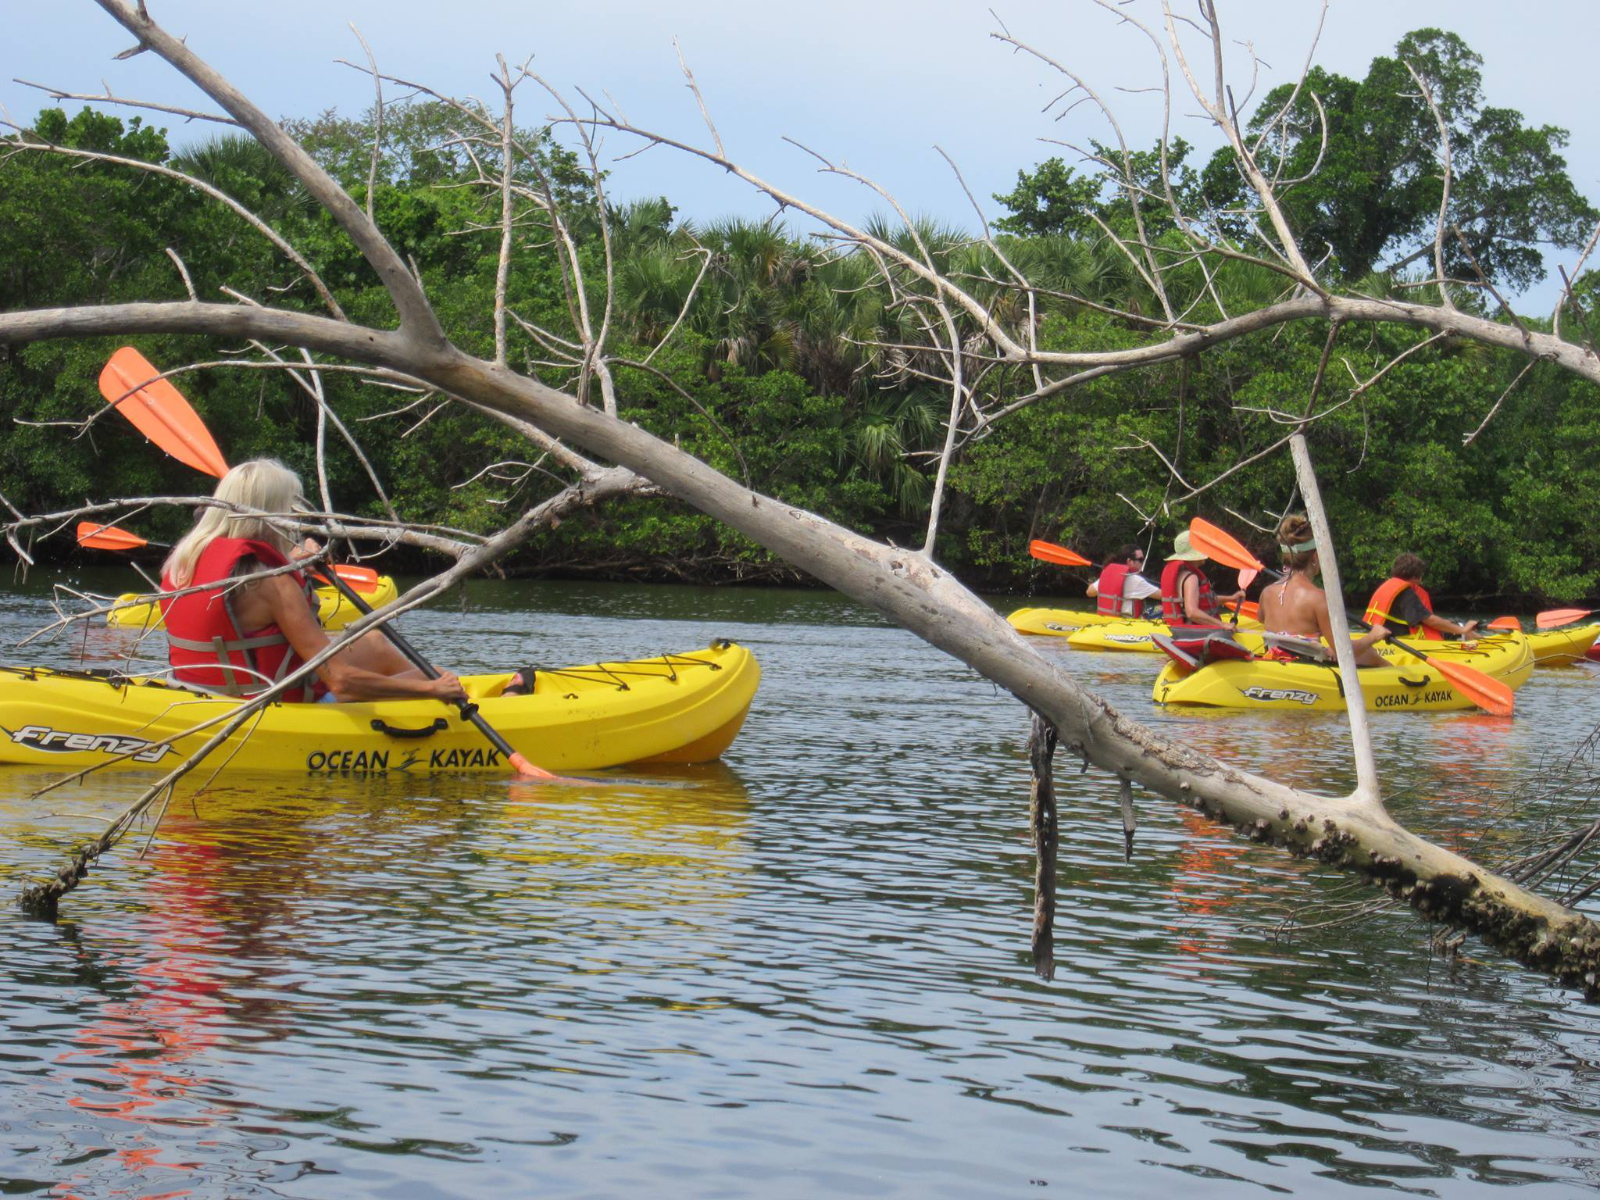 Basic Kayaking Safety Advice: Follow These 6 Guidelines For The Best Experience